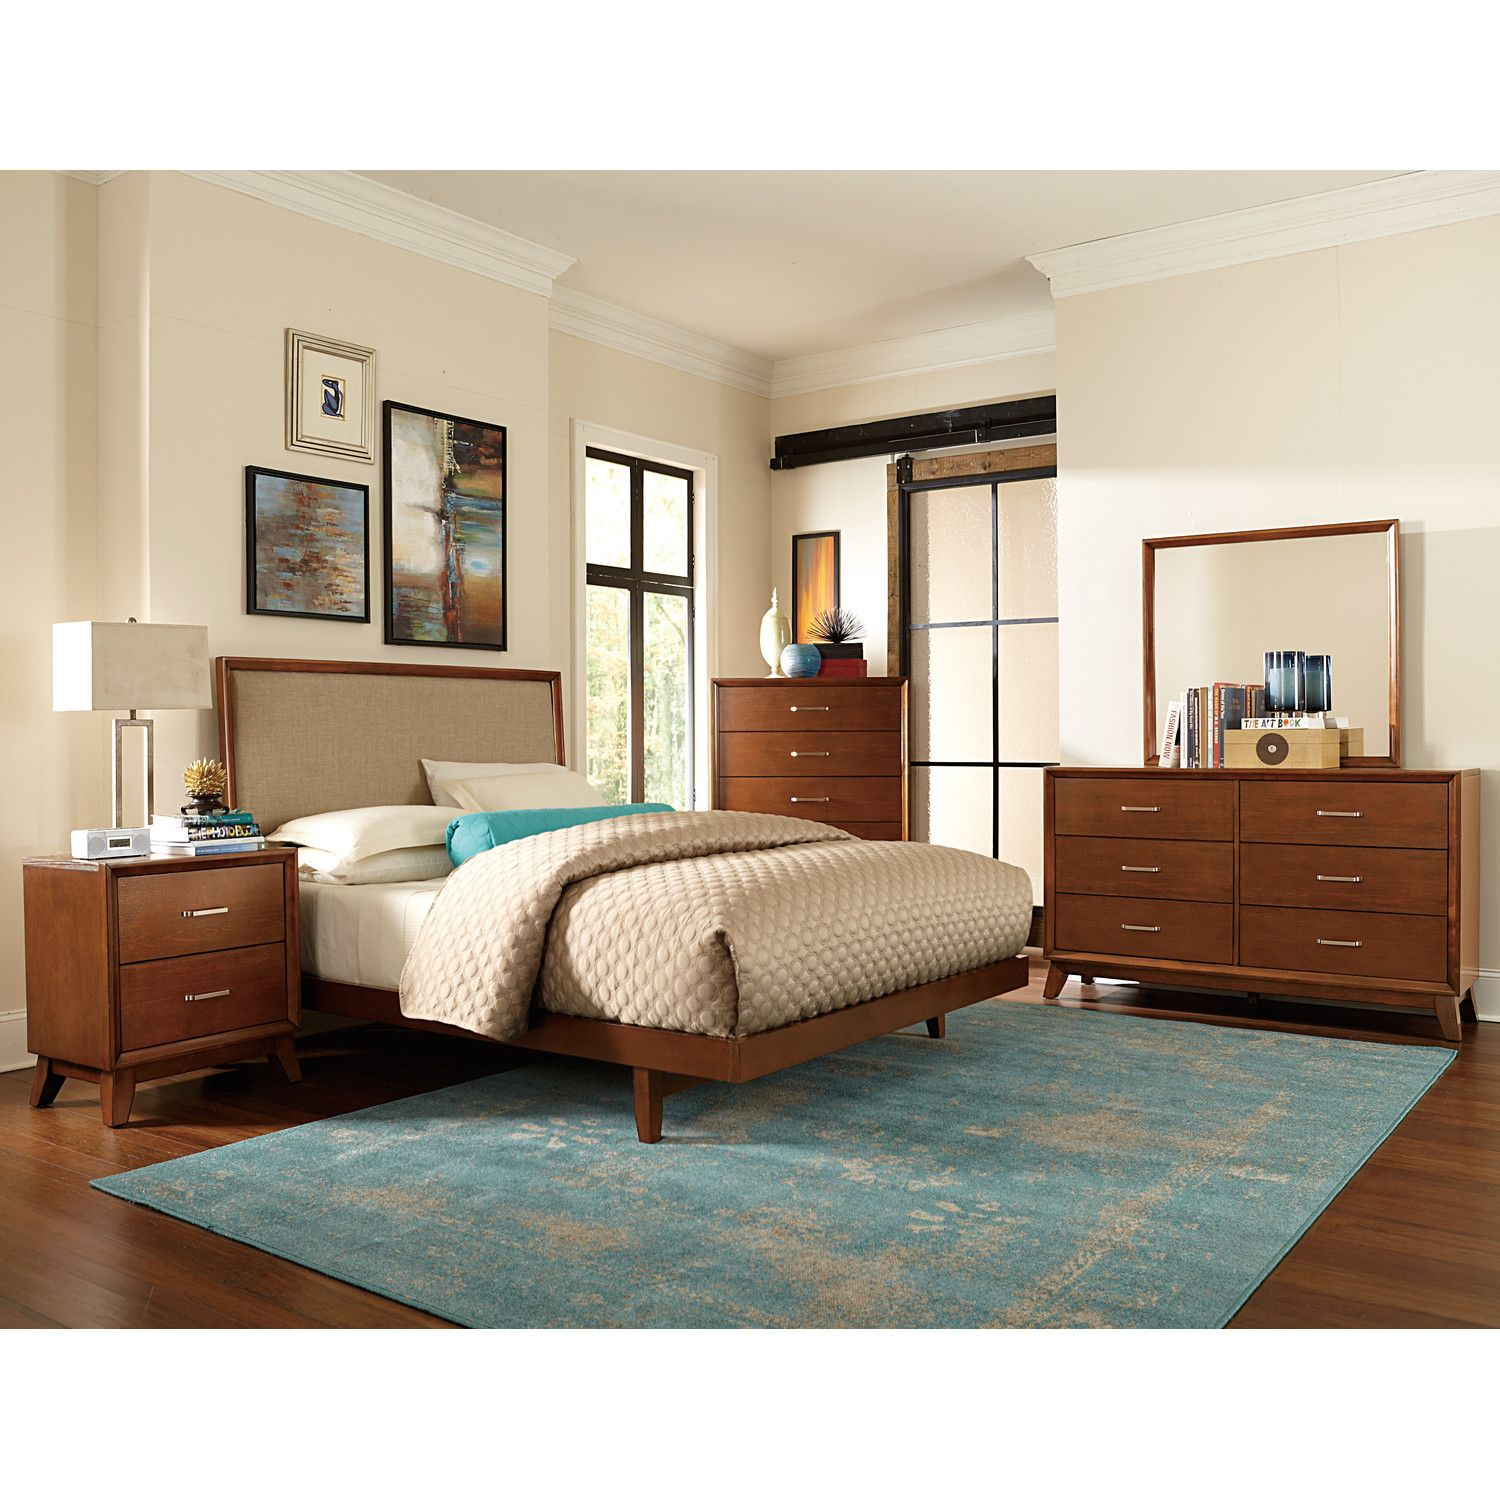 Woodbridge Home Designs Bedroom Furniture